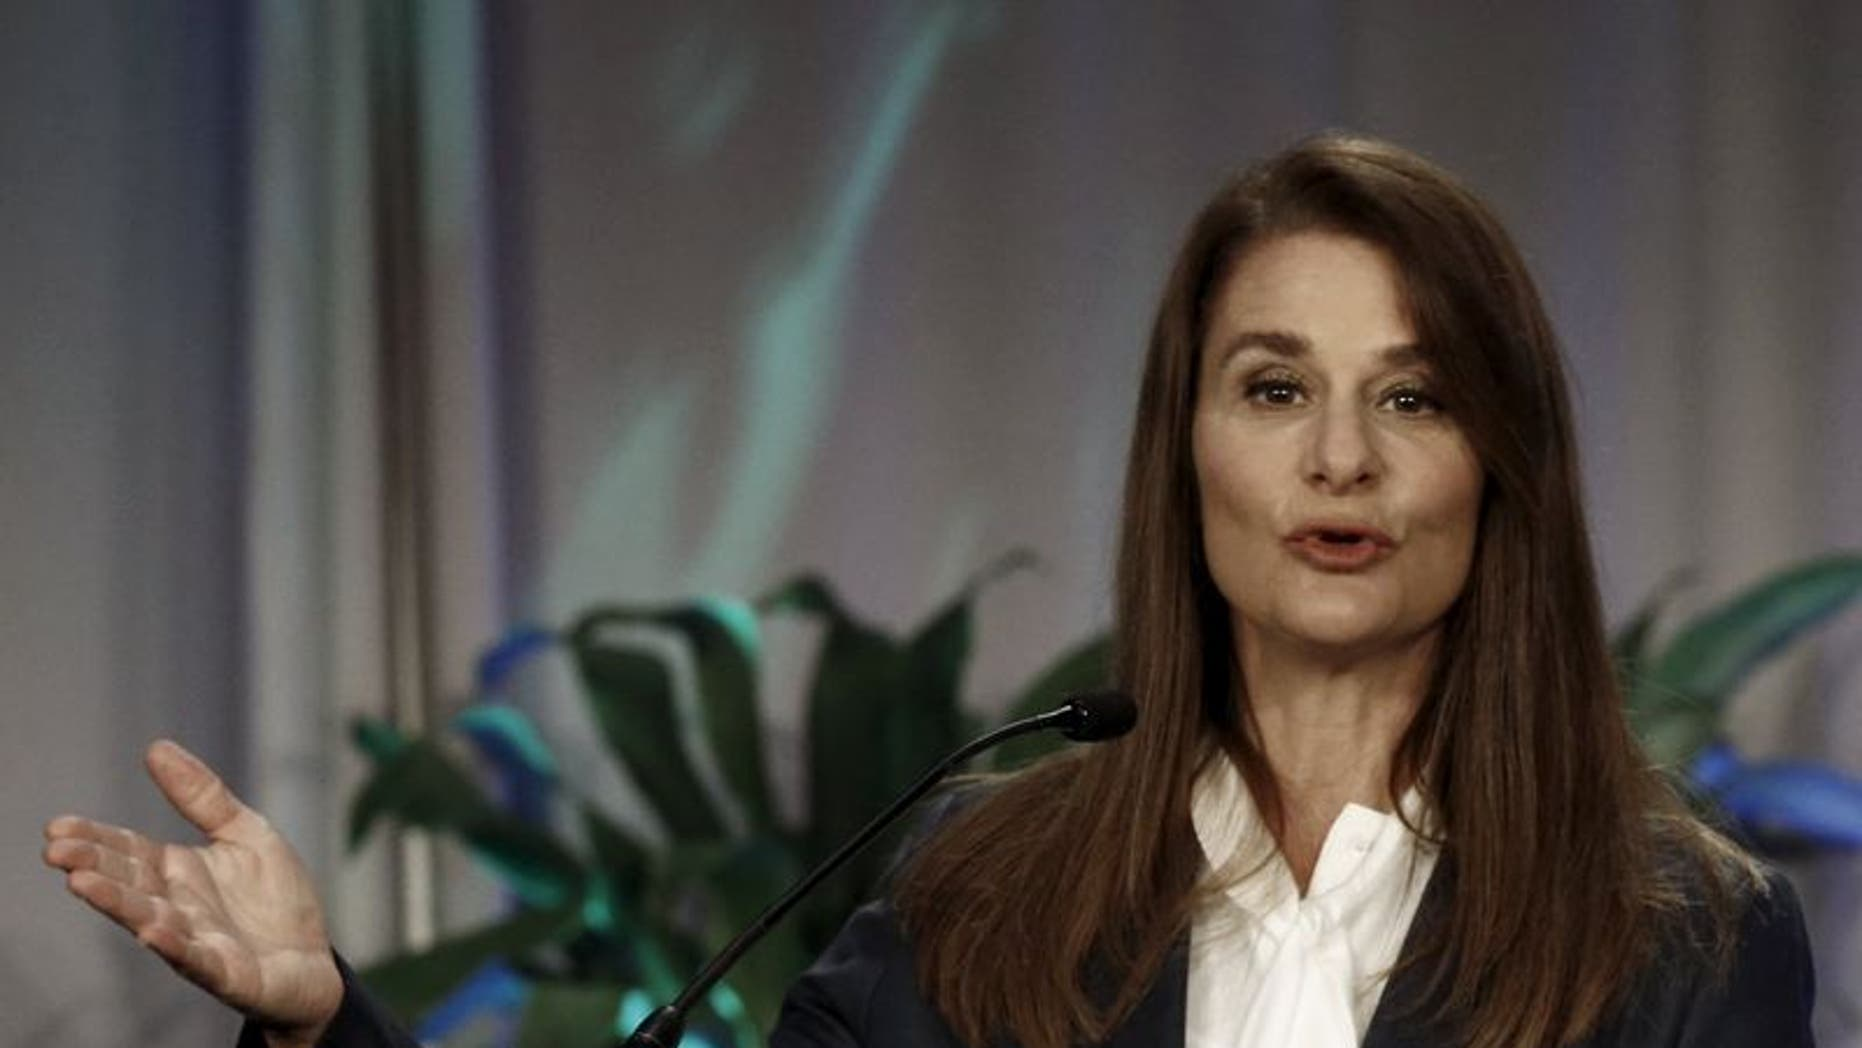 Melinda Gates, co-founder of Bill & Melinda Gates Foundation, gives a speech during the opening plenary of the Global Maternal Newborn Health Conference in Mexico City, Mexico October 19, 2015. REUTERS/Henry Romero